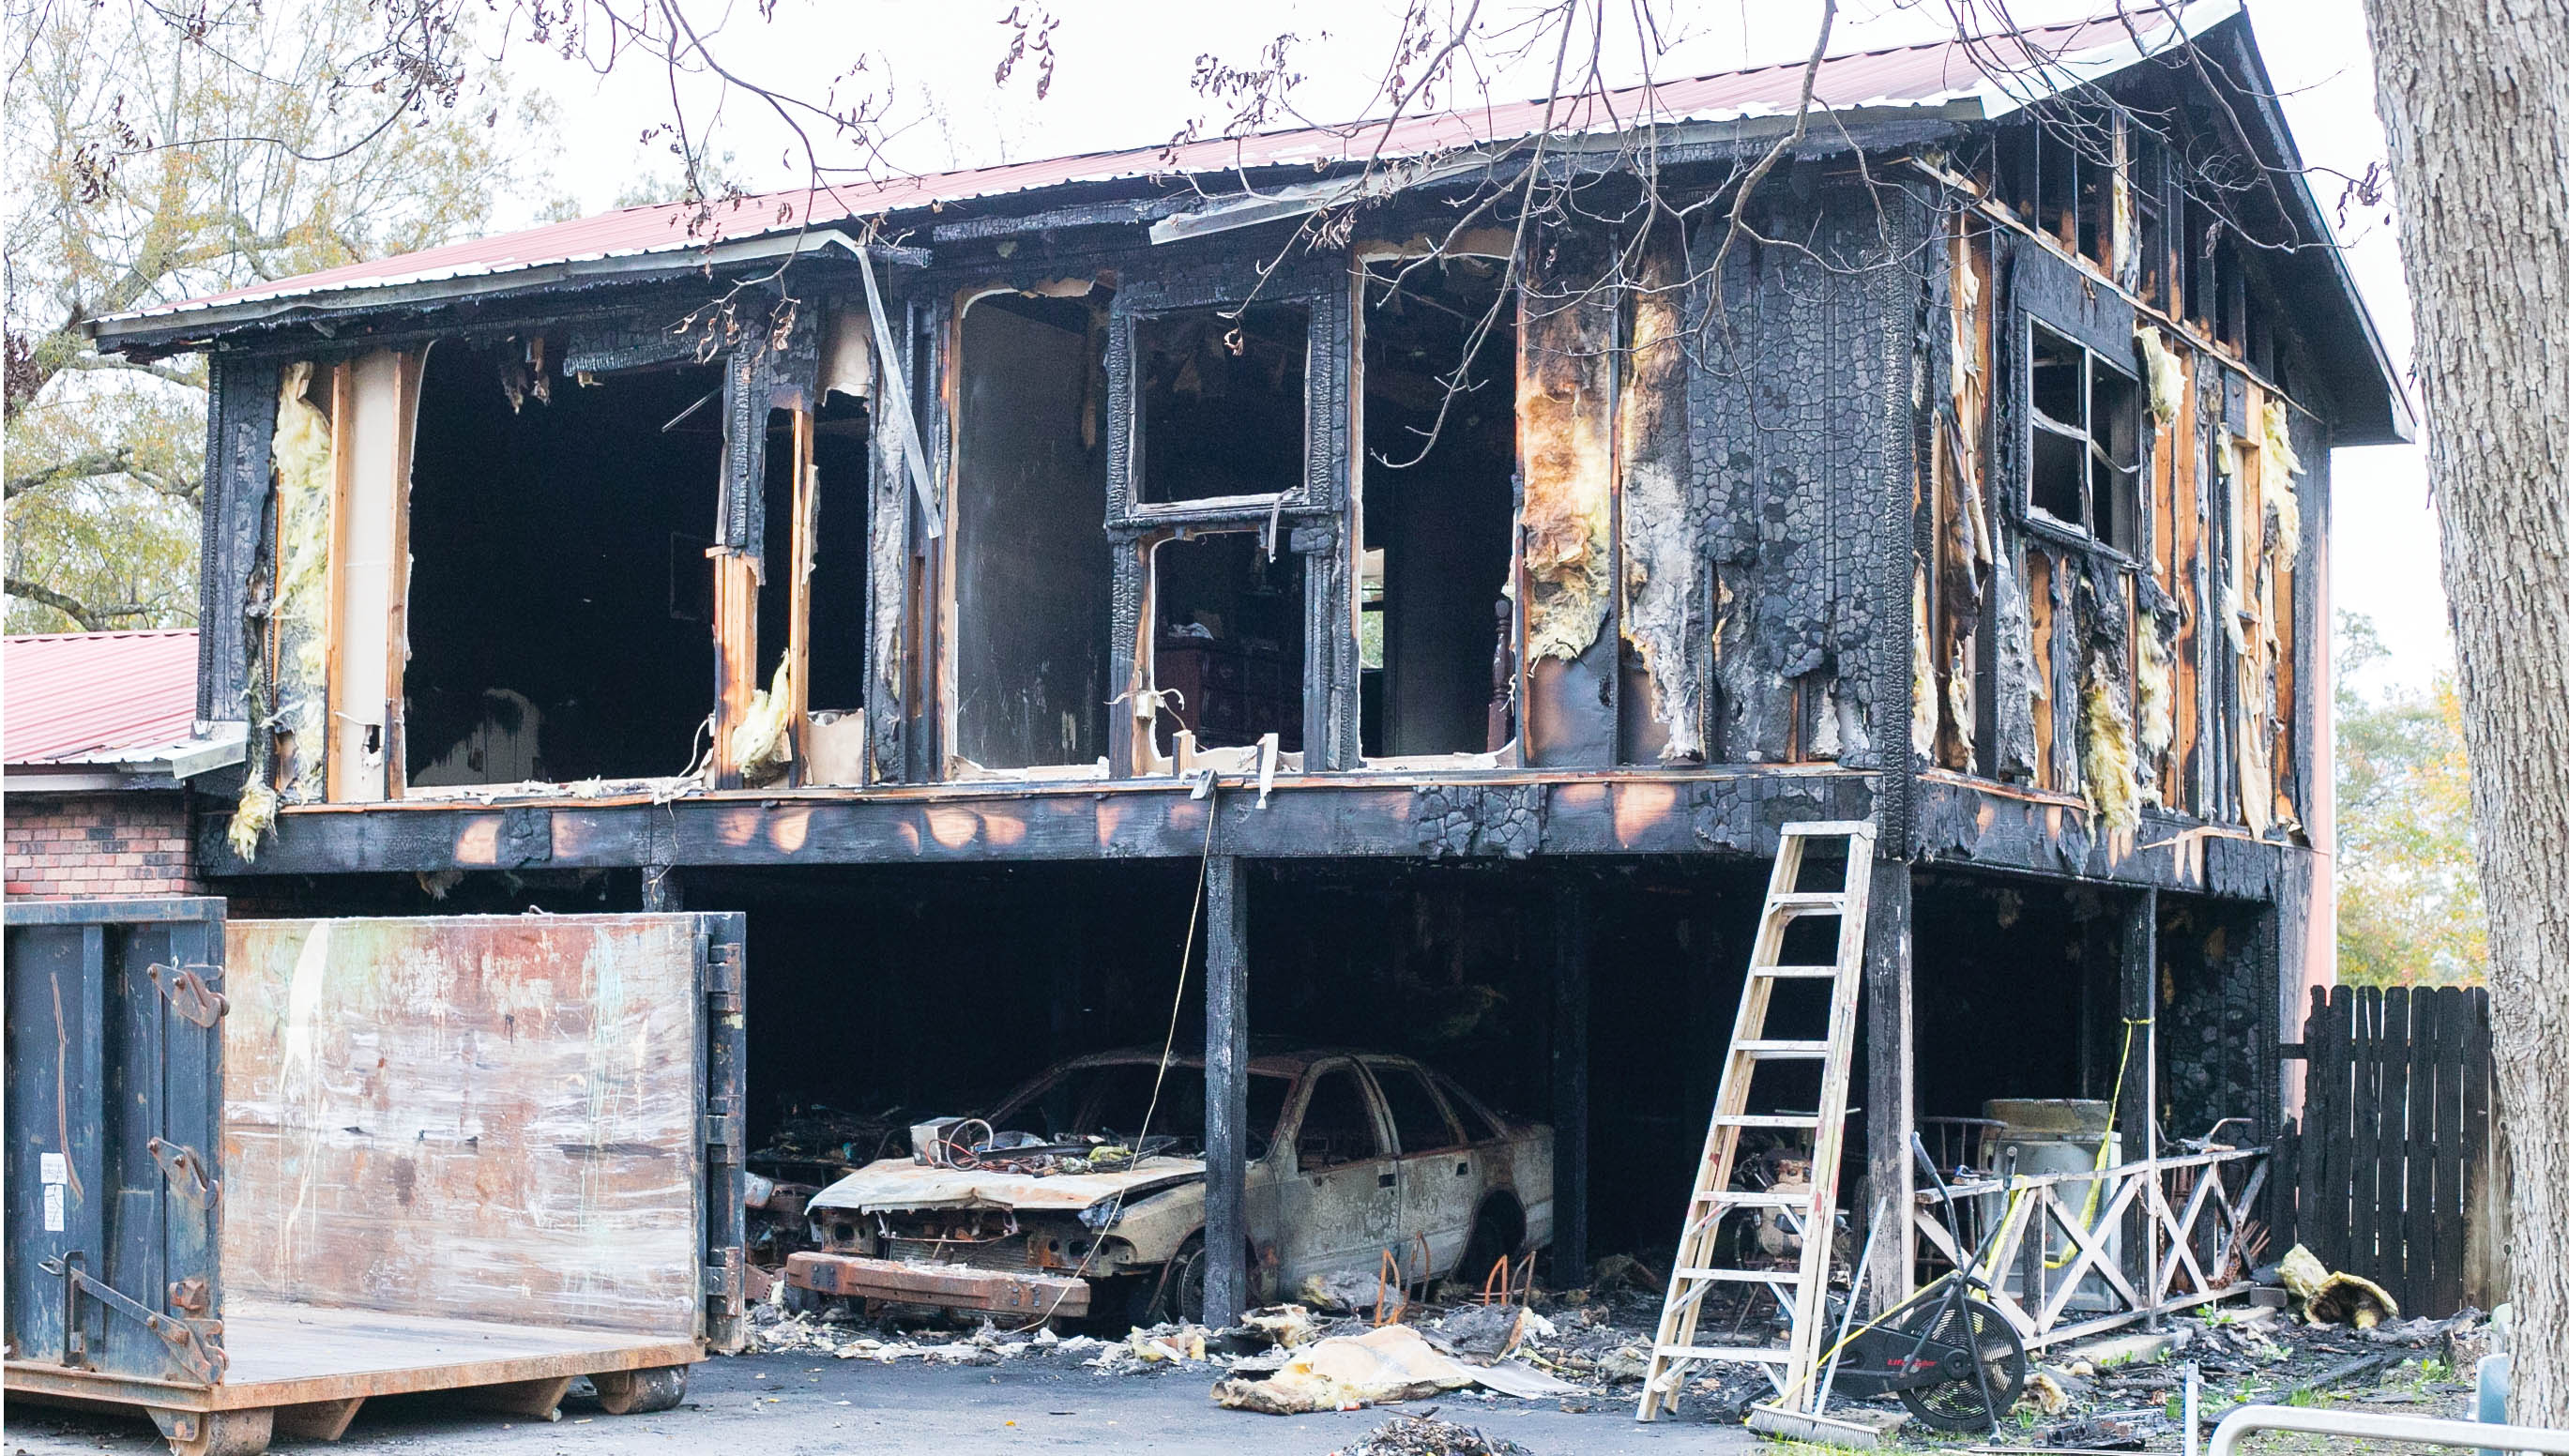 The house fire at 707 E. Independence St. on Nov. 2 was determined to be an act of arson by the State Fire Marshal. The home is that of Moses Bell, Jr., the grandfather of Cordarryl Bell. Bell is the suspect in a murder and shooting on the same day.